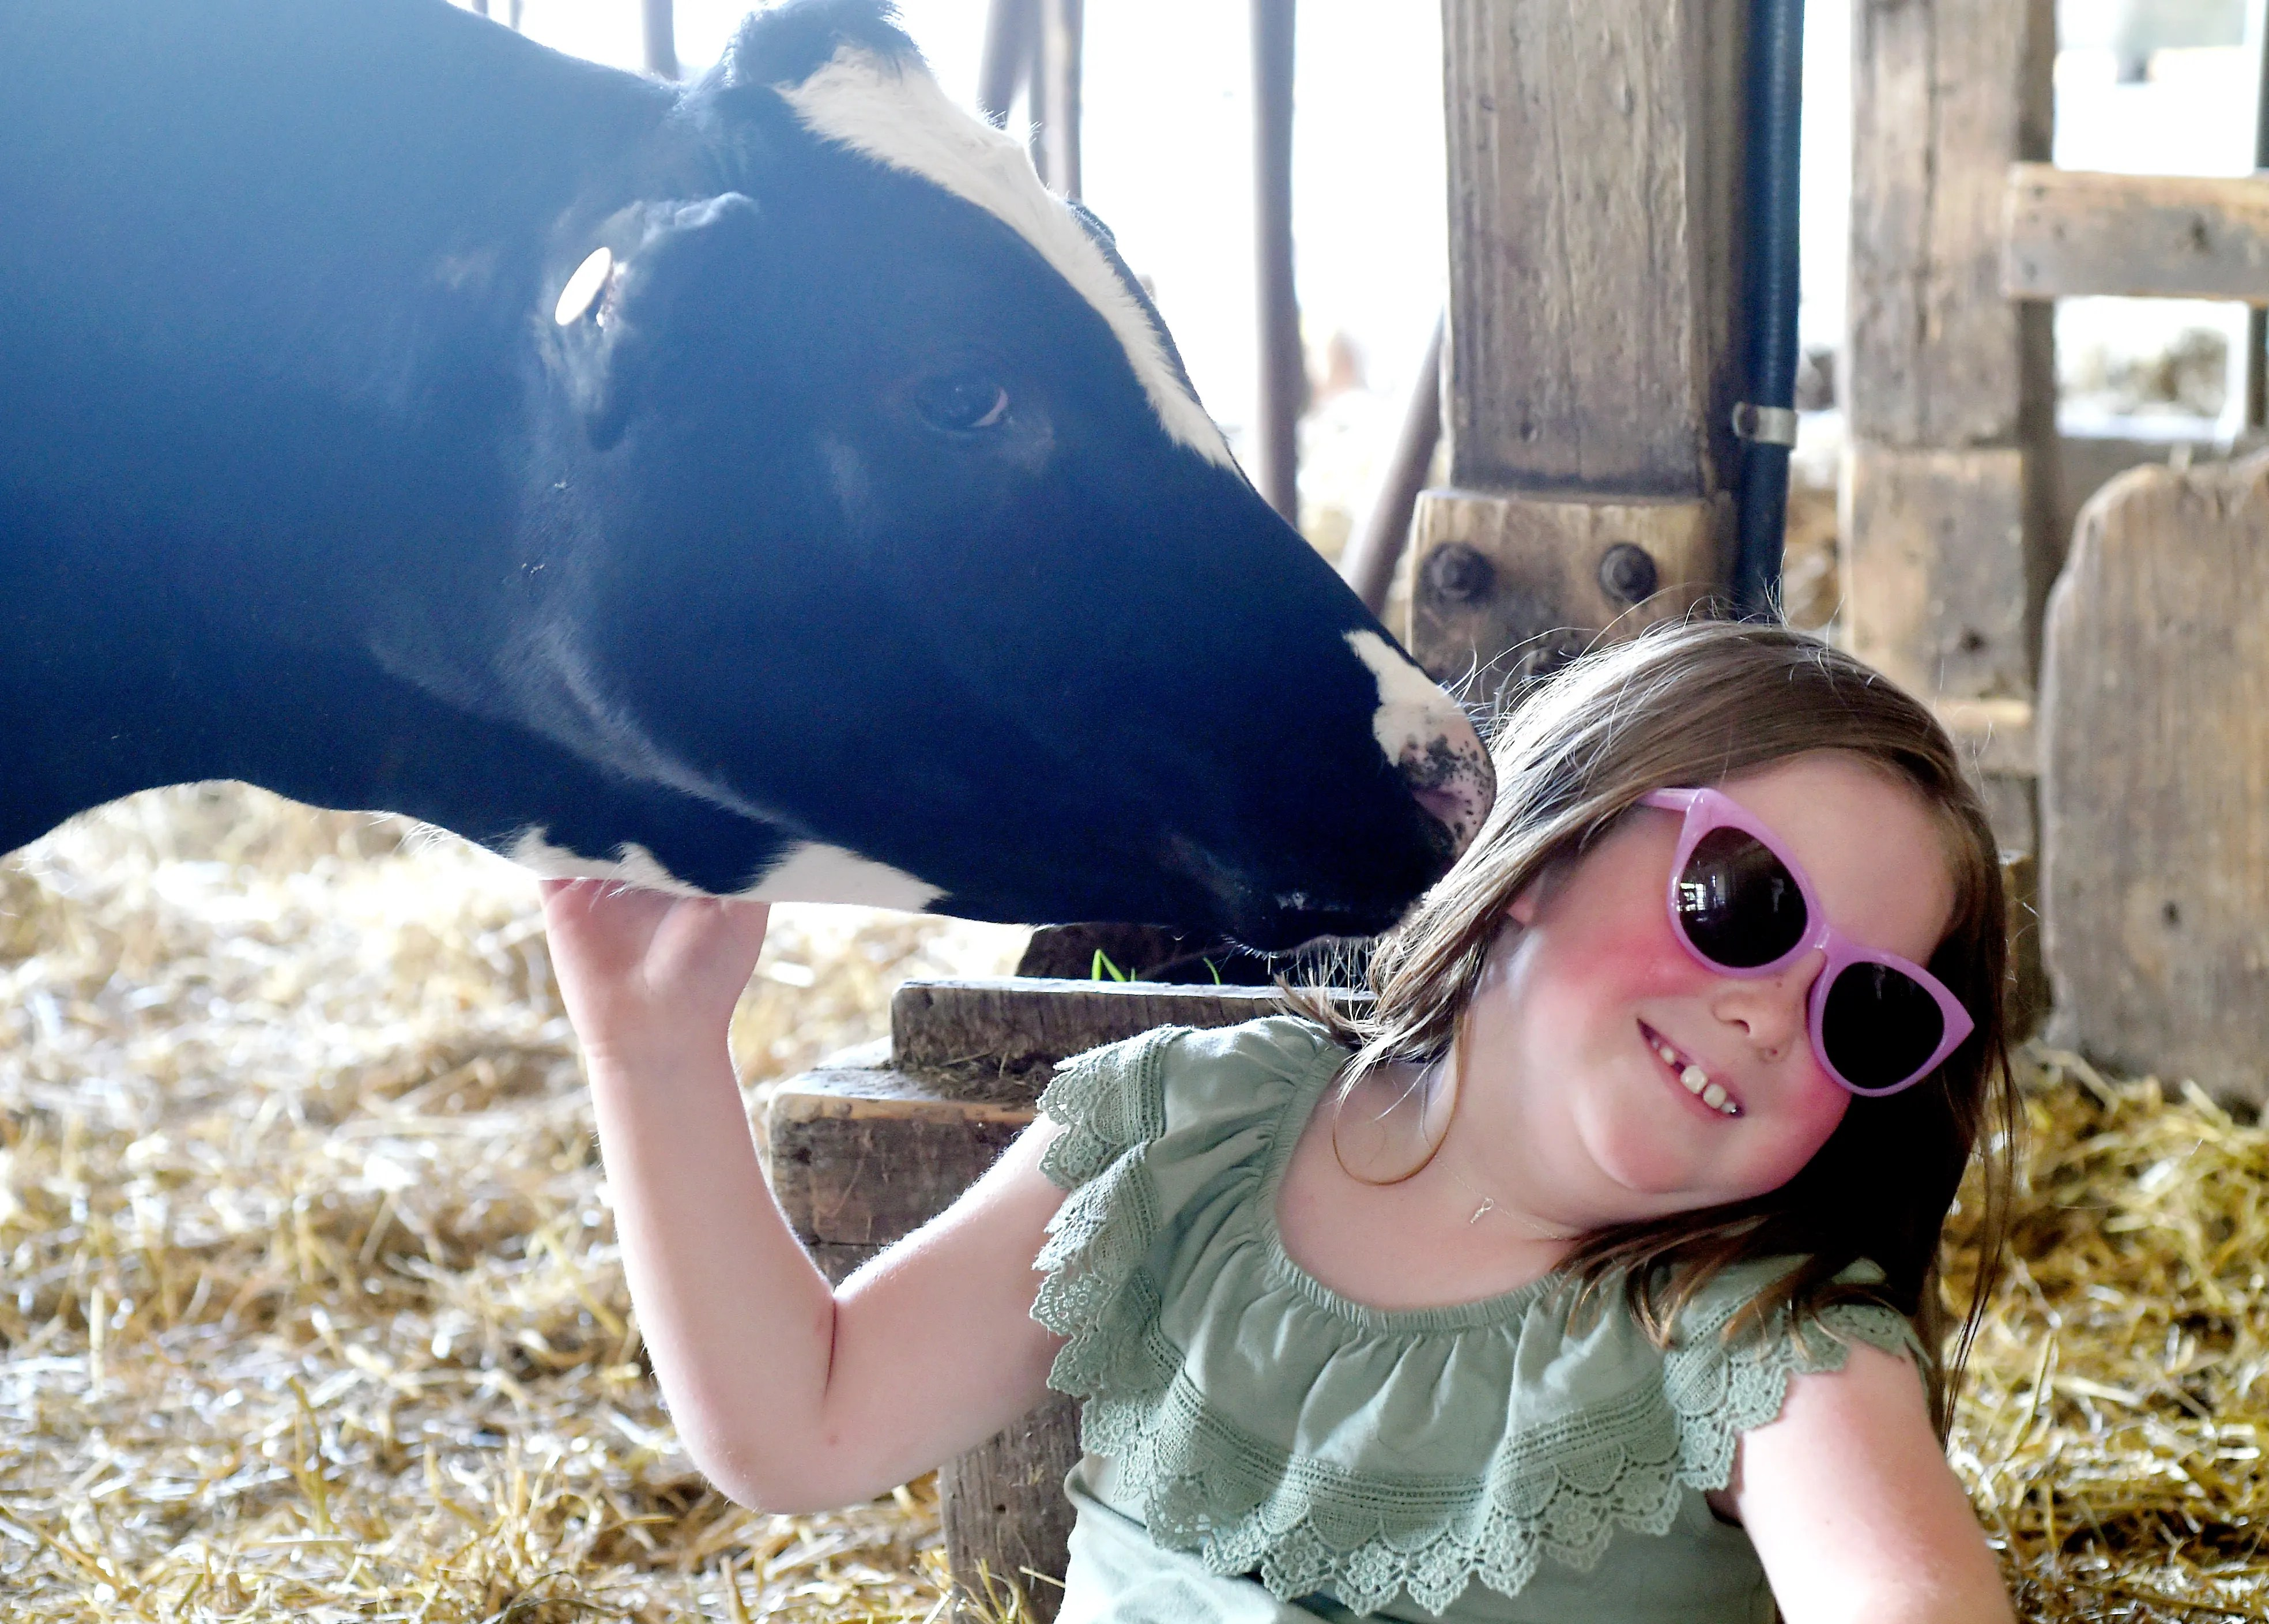 AnnaMay Stauffer, age 6, cuddles a cow at Sunset View Creamery on May 20, 2021.